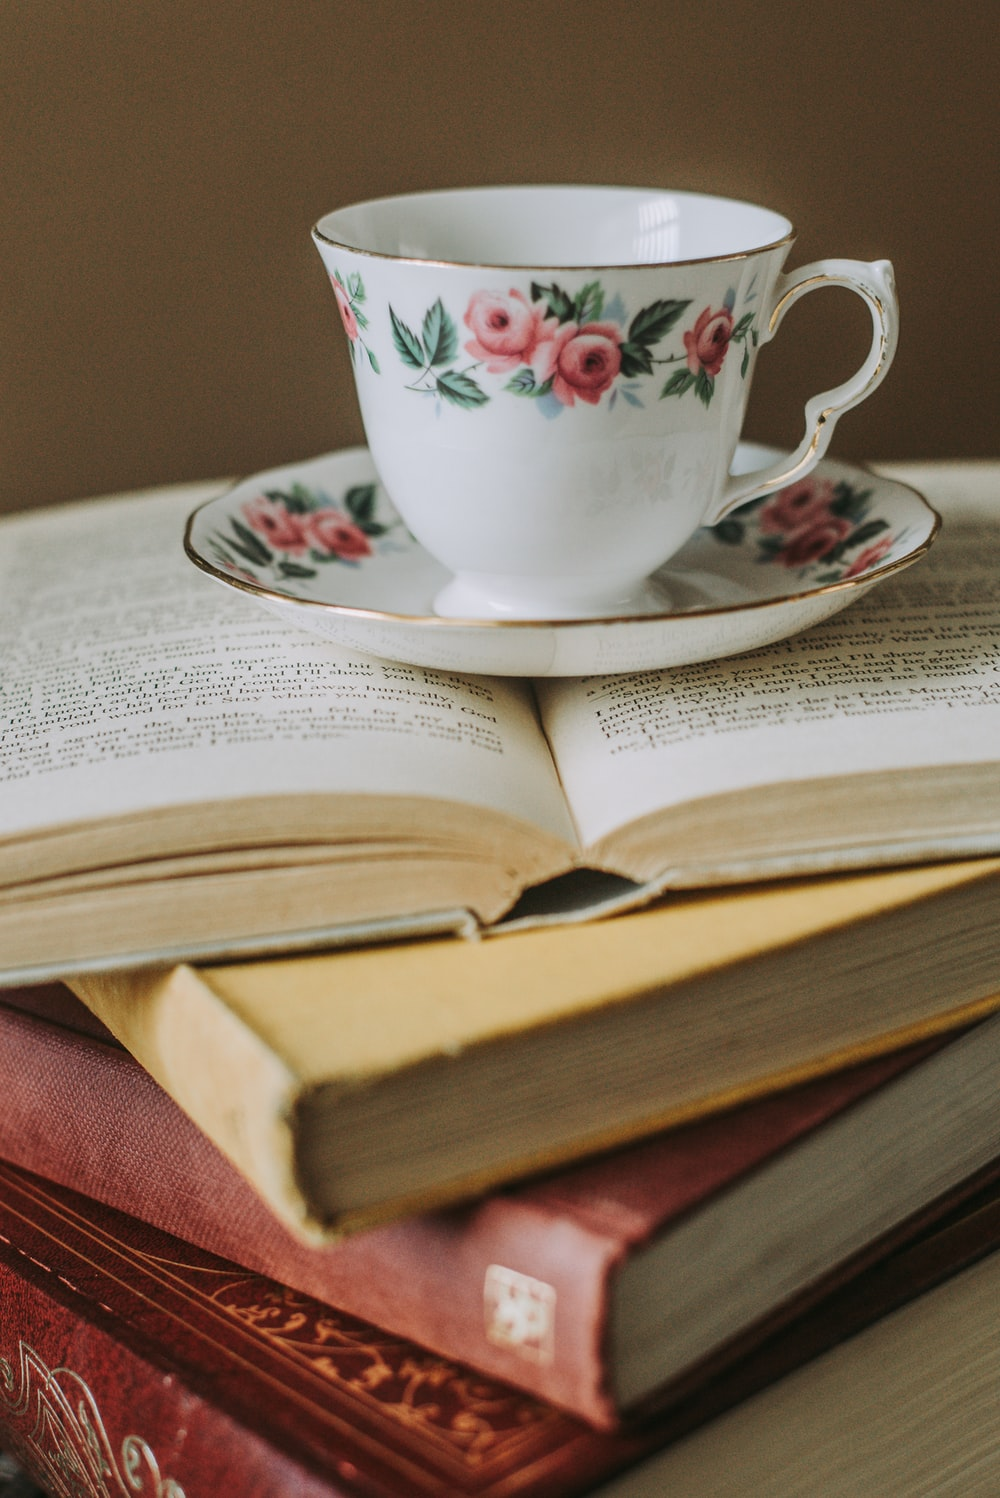 White And Pink Teacup On Top Of Opened Book